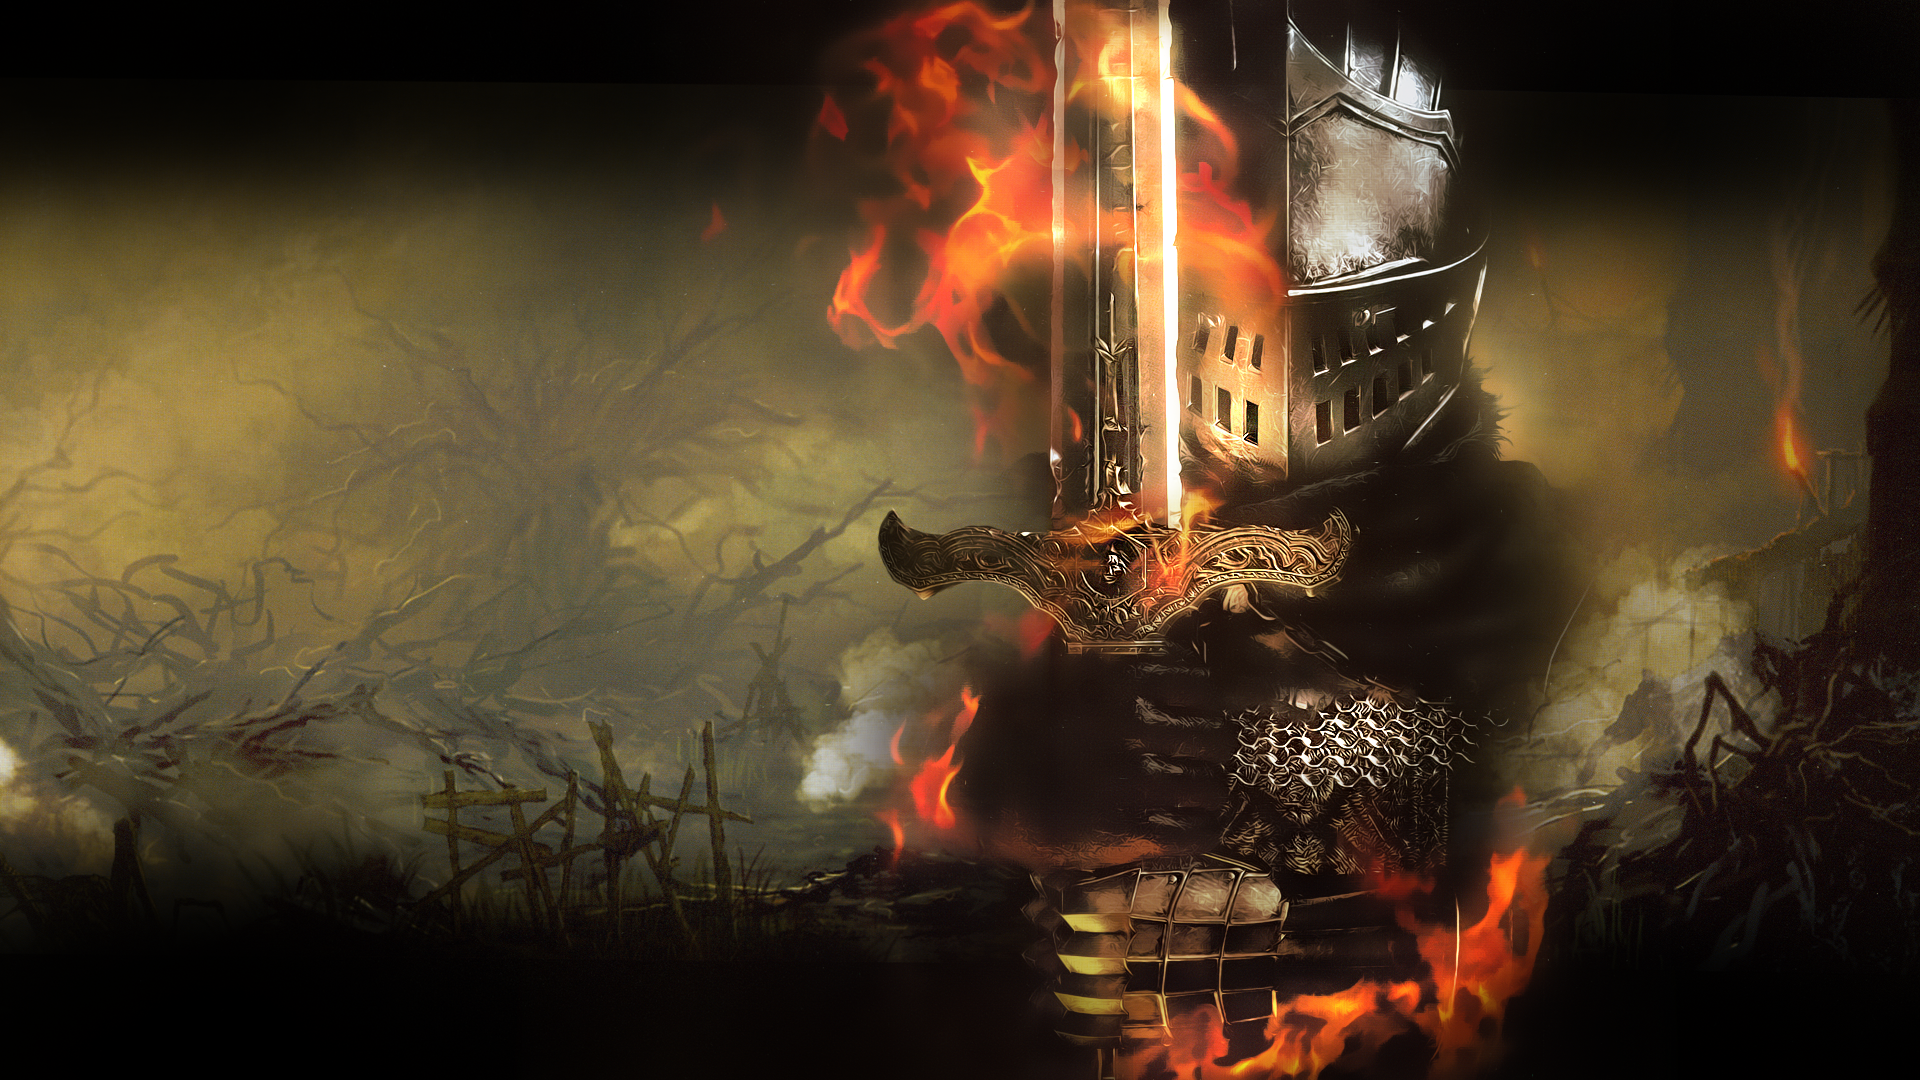 3840x2160 Dark Souls 3 4k Beautiful Wallpapers Dark Souls Dark Souls 3 Dark Souls Wallpaper